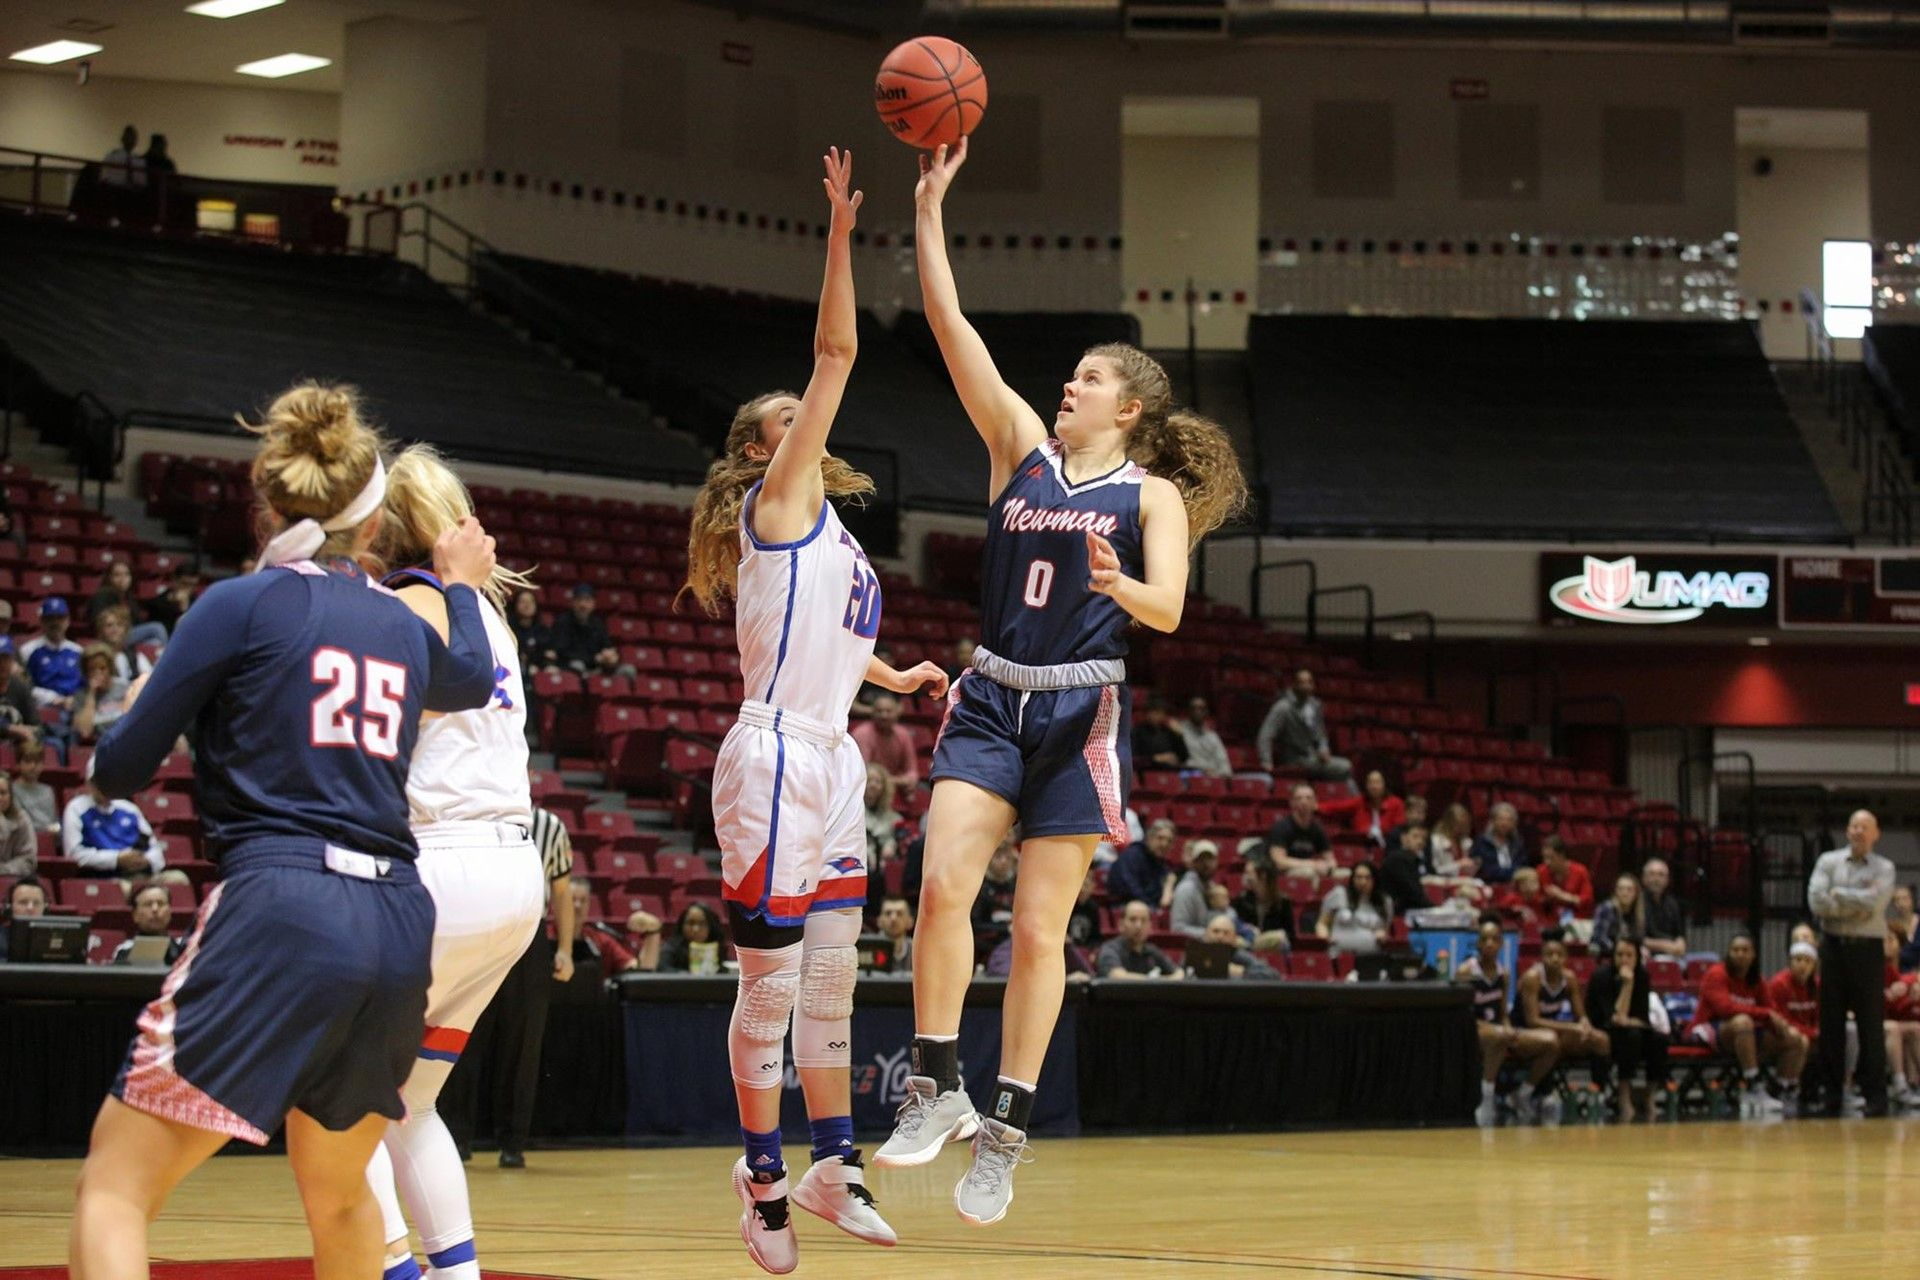 Women's basketball aims to care for 'People over Perfection'